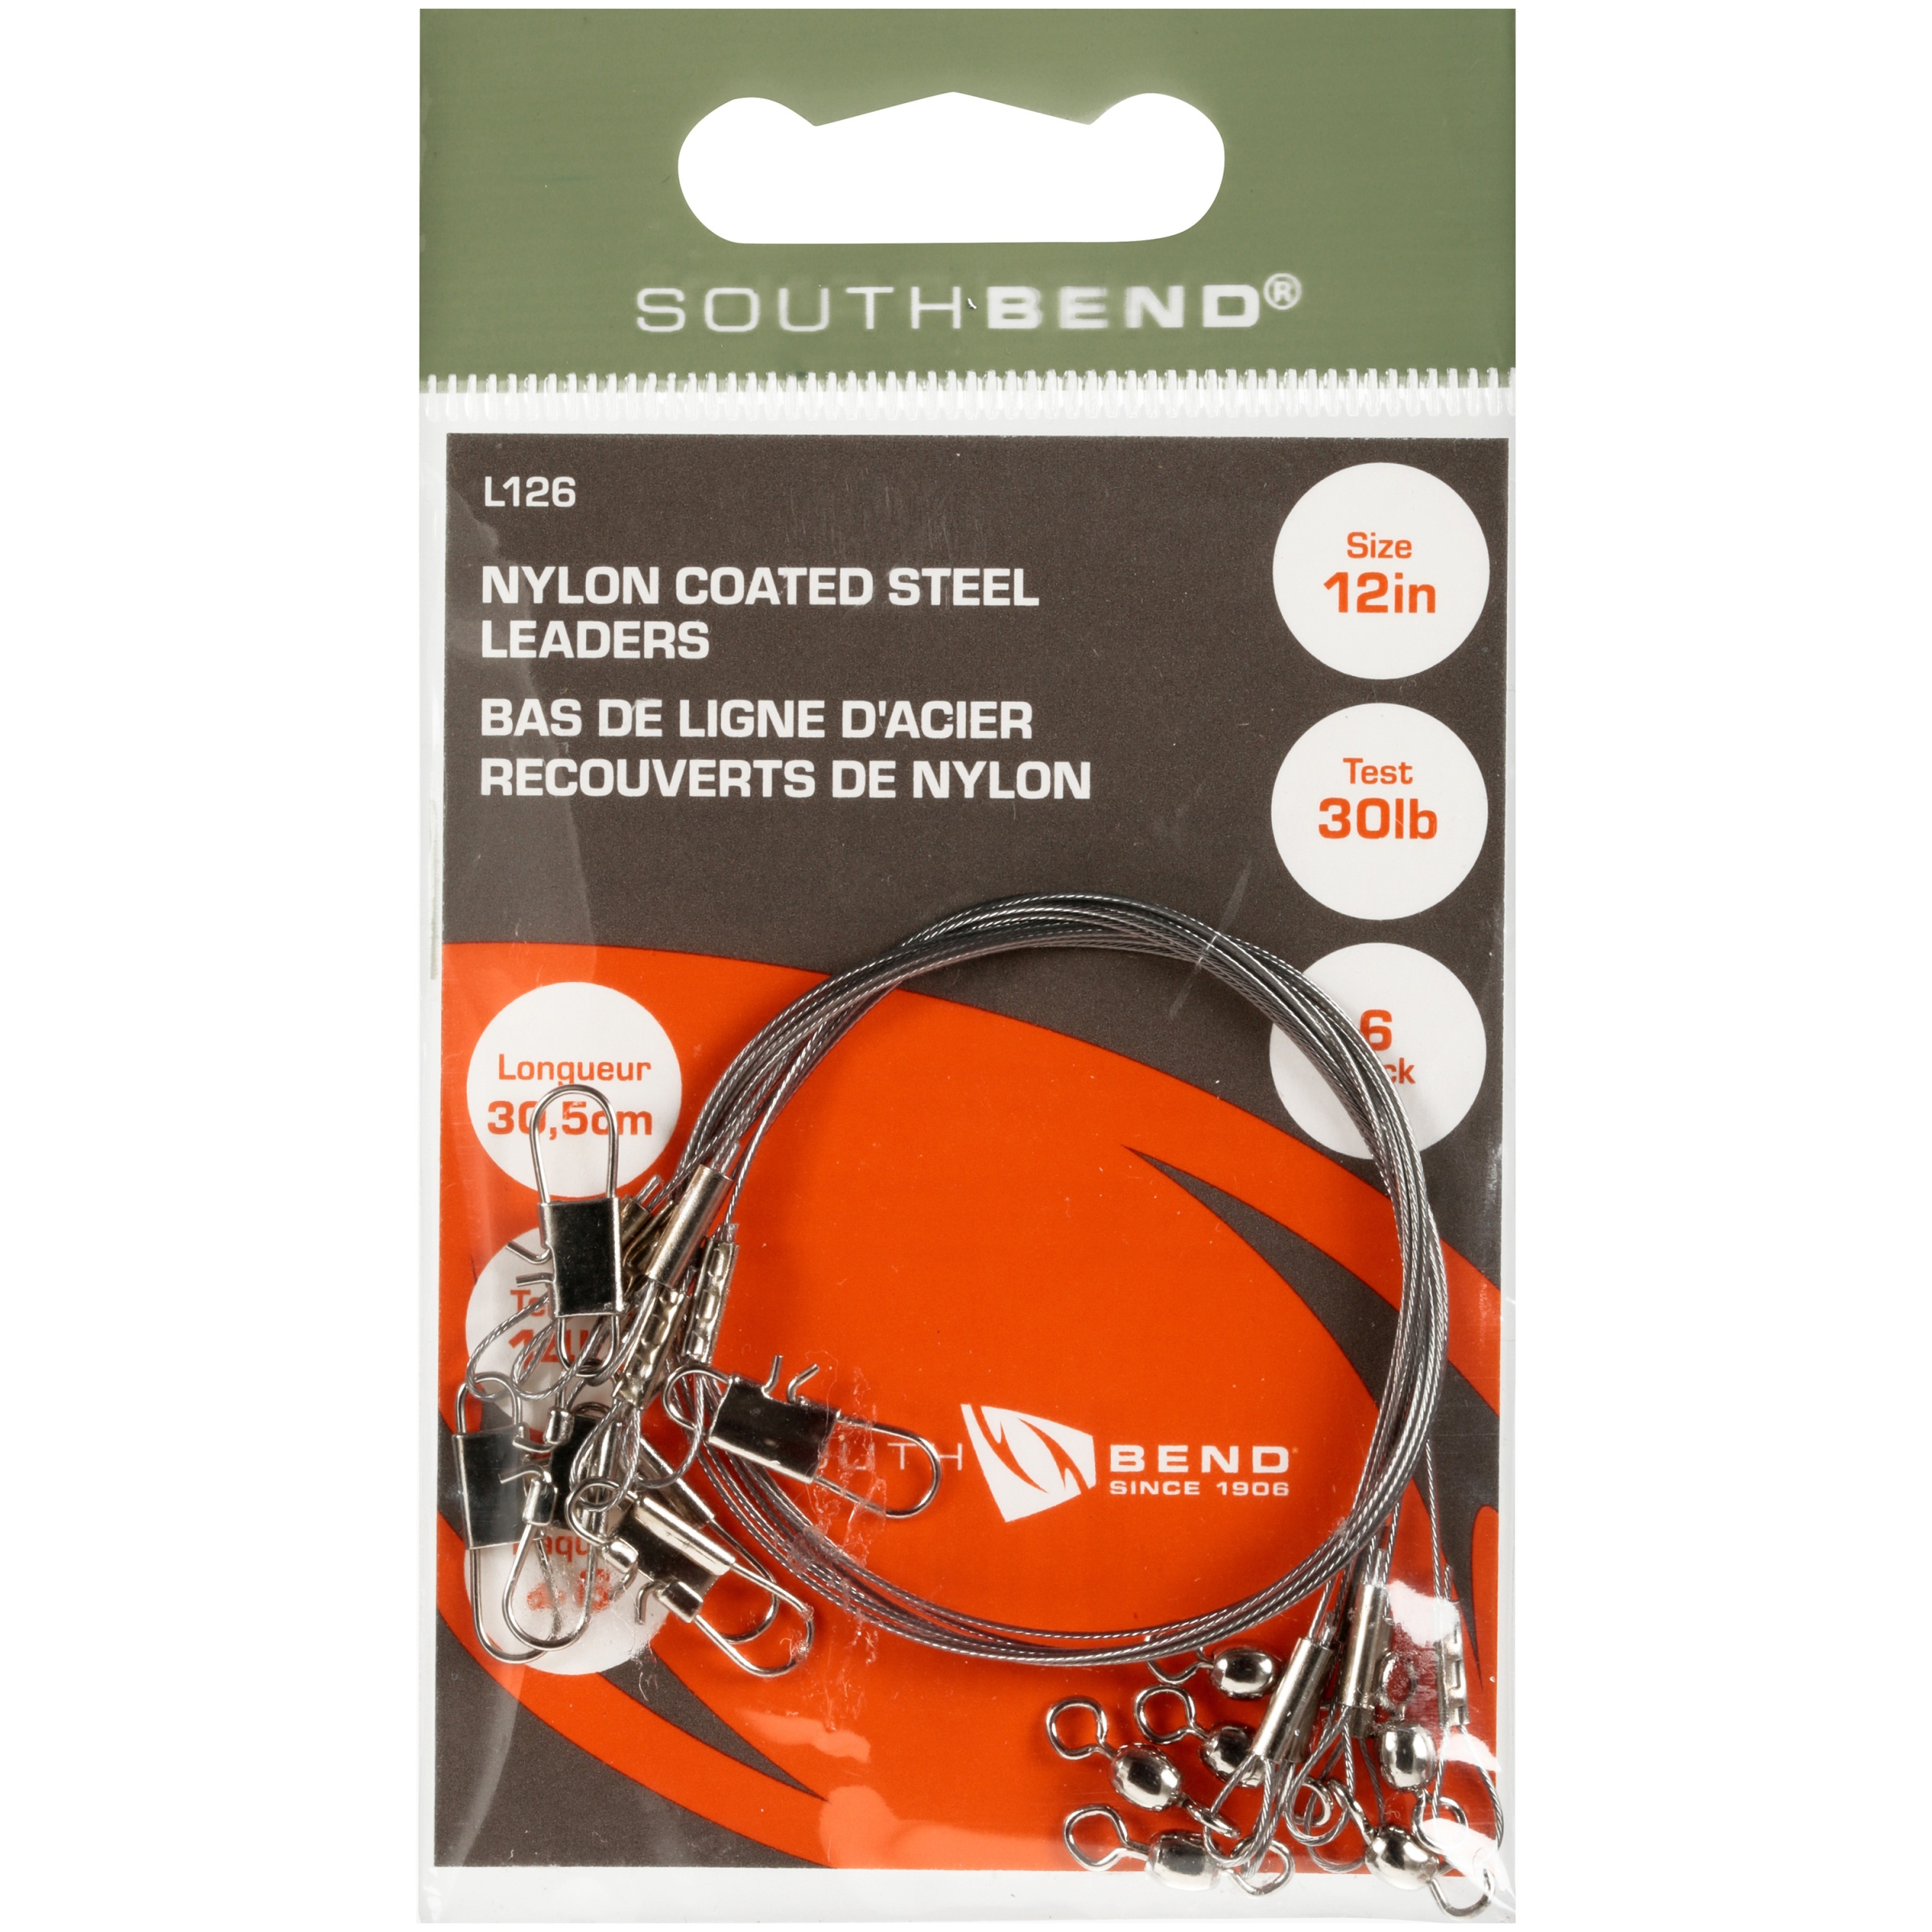 South Bend® Nylon Coated Steel Leaders 6 ct Pack